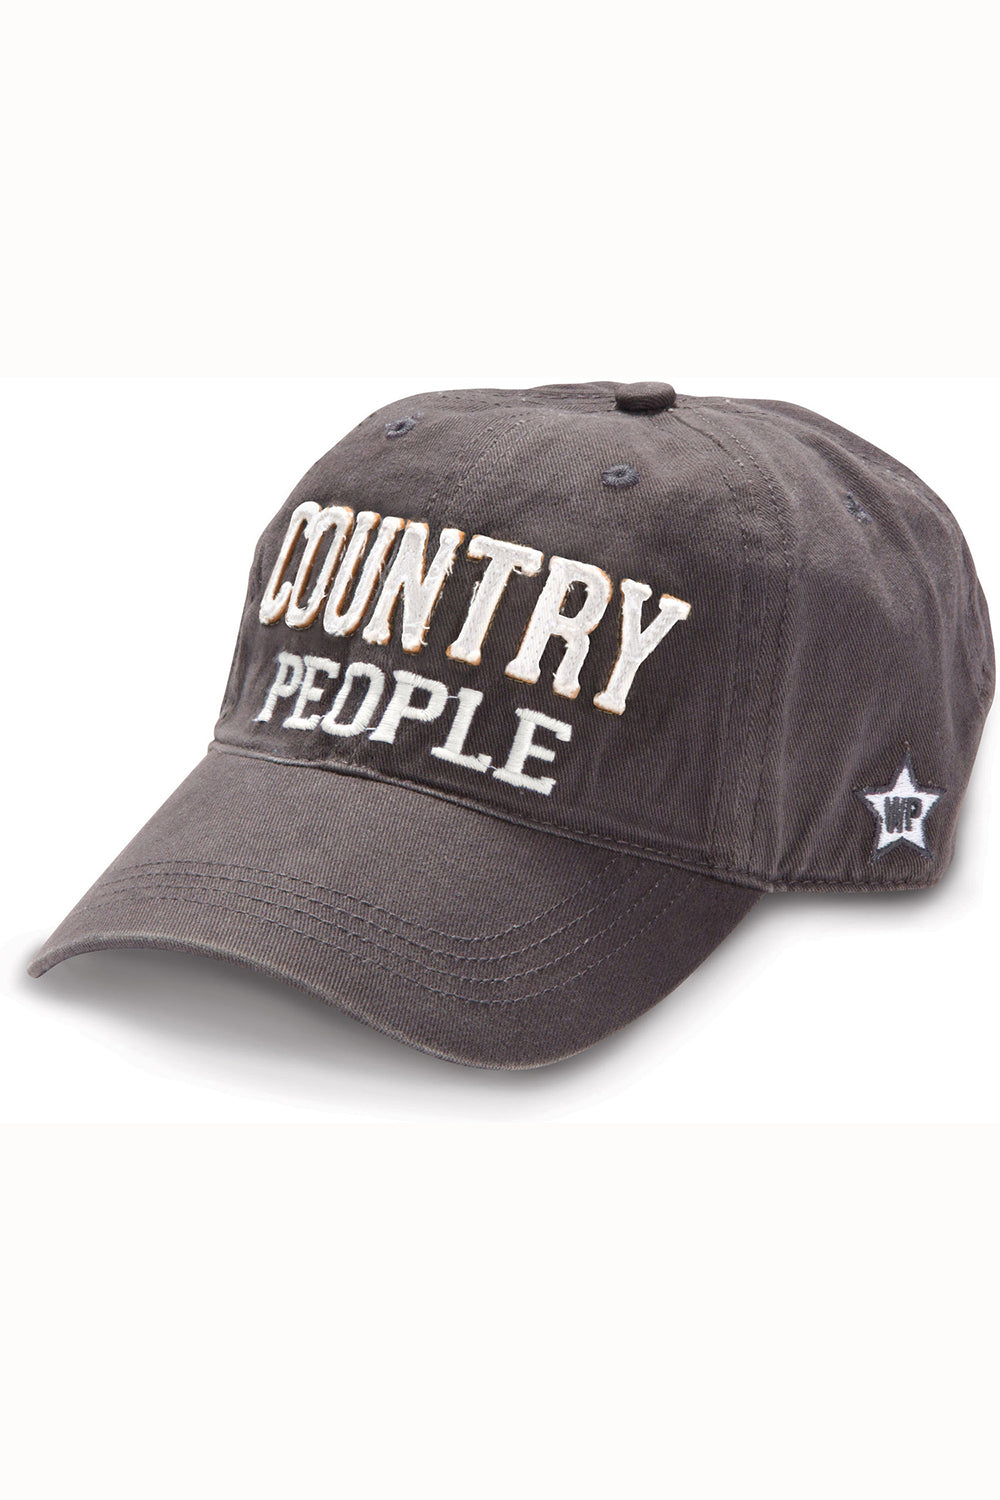 Adjustable Hat - Country People